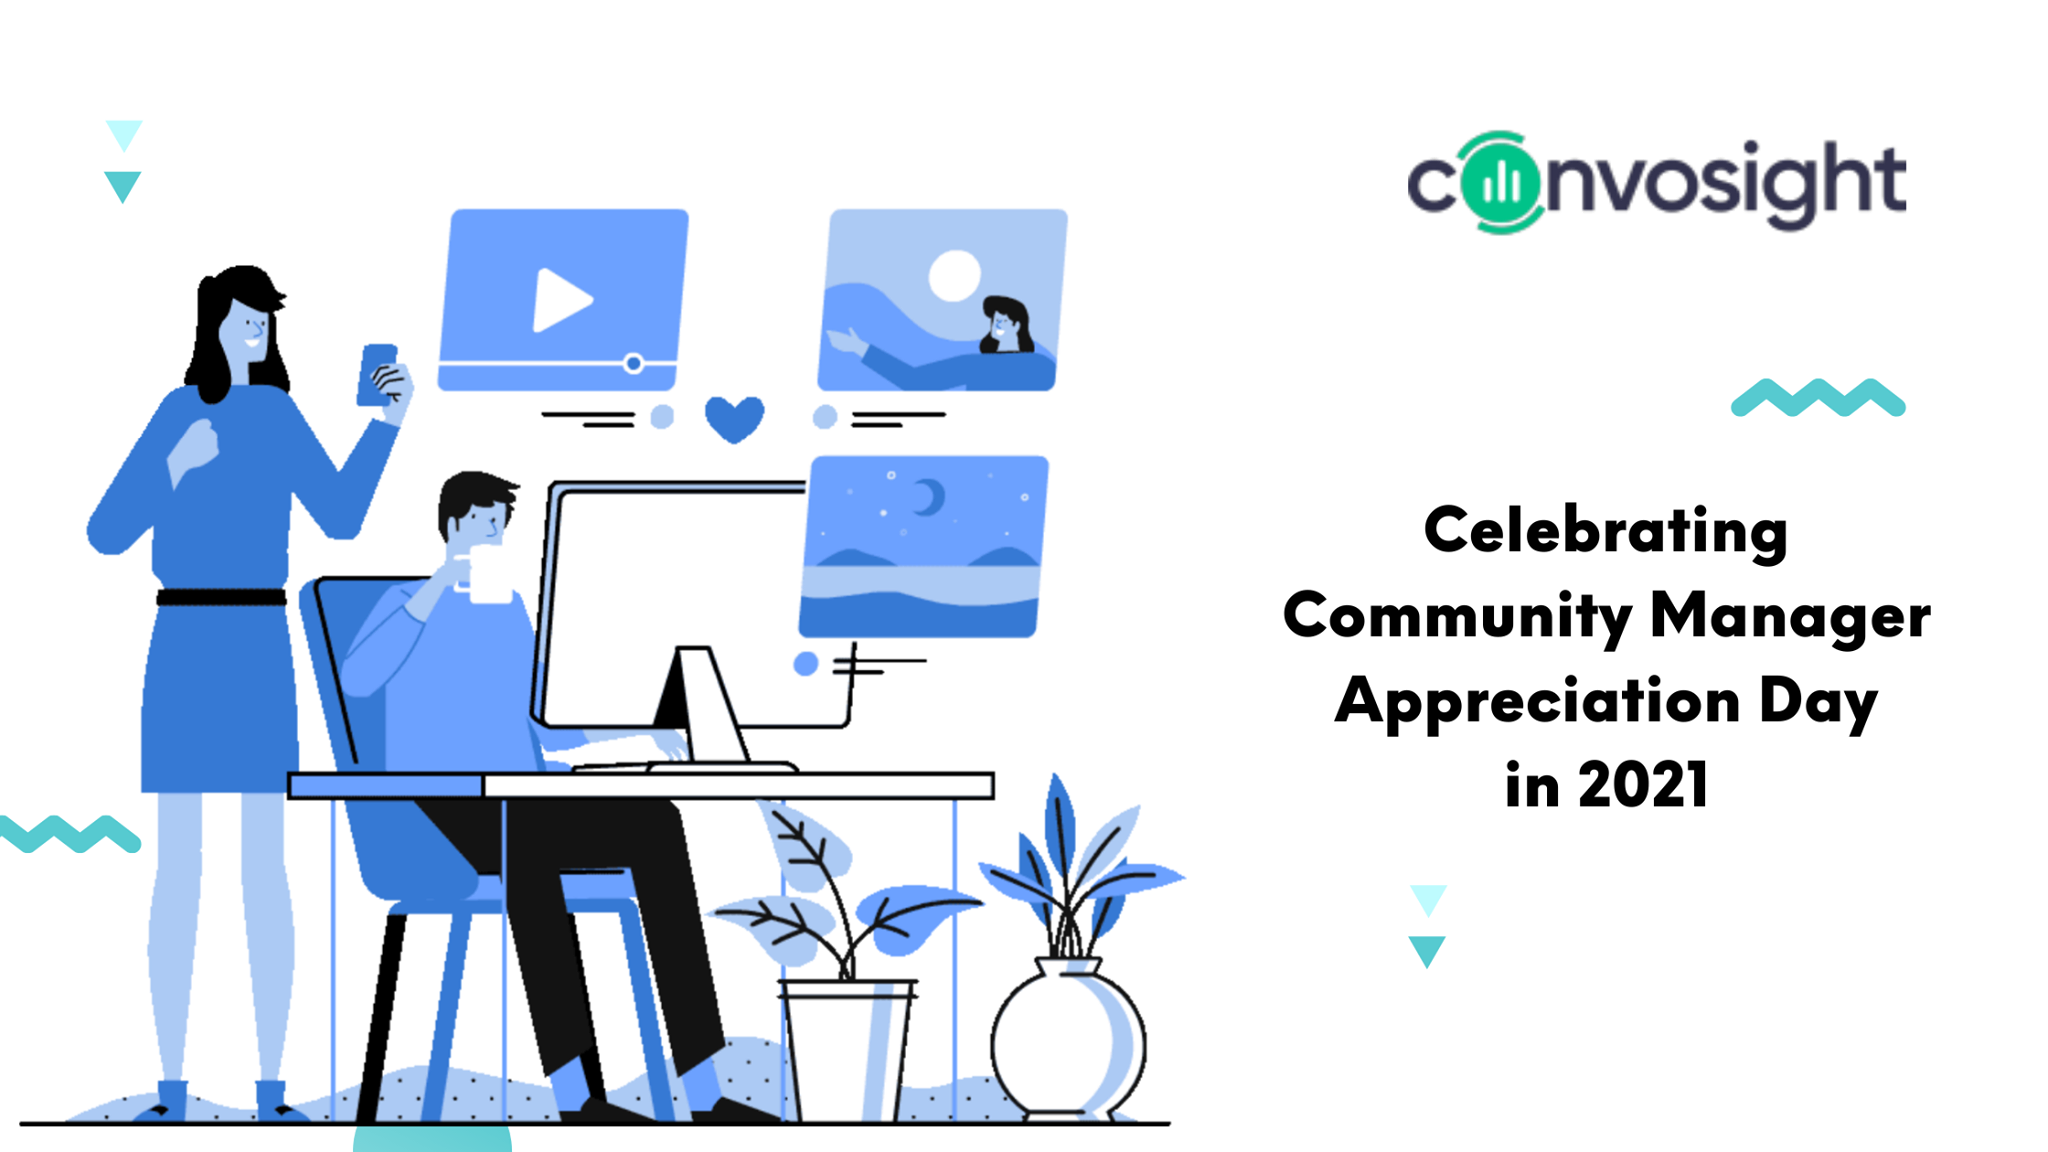 community-manager-appreciation-day-2021-convosight